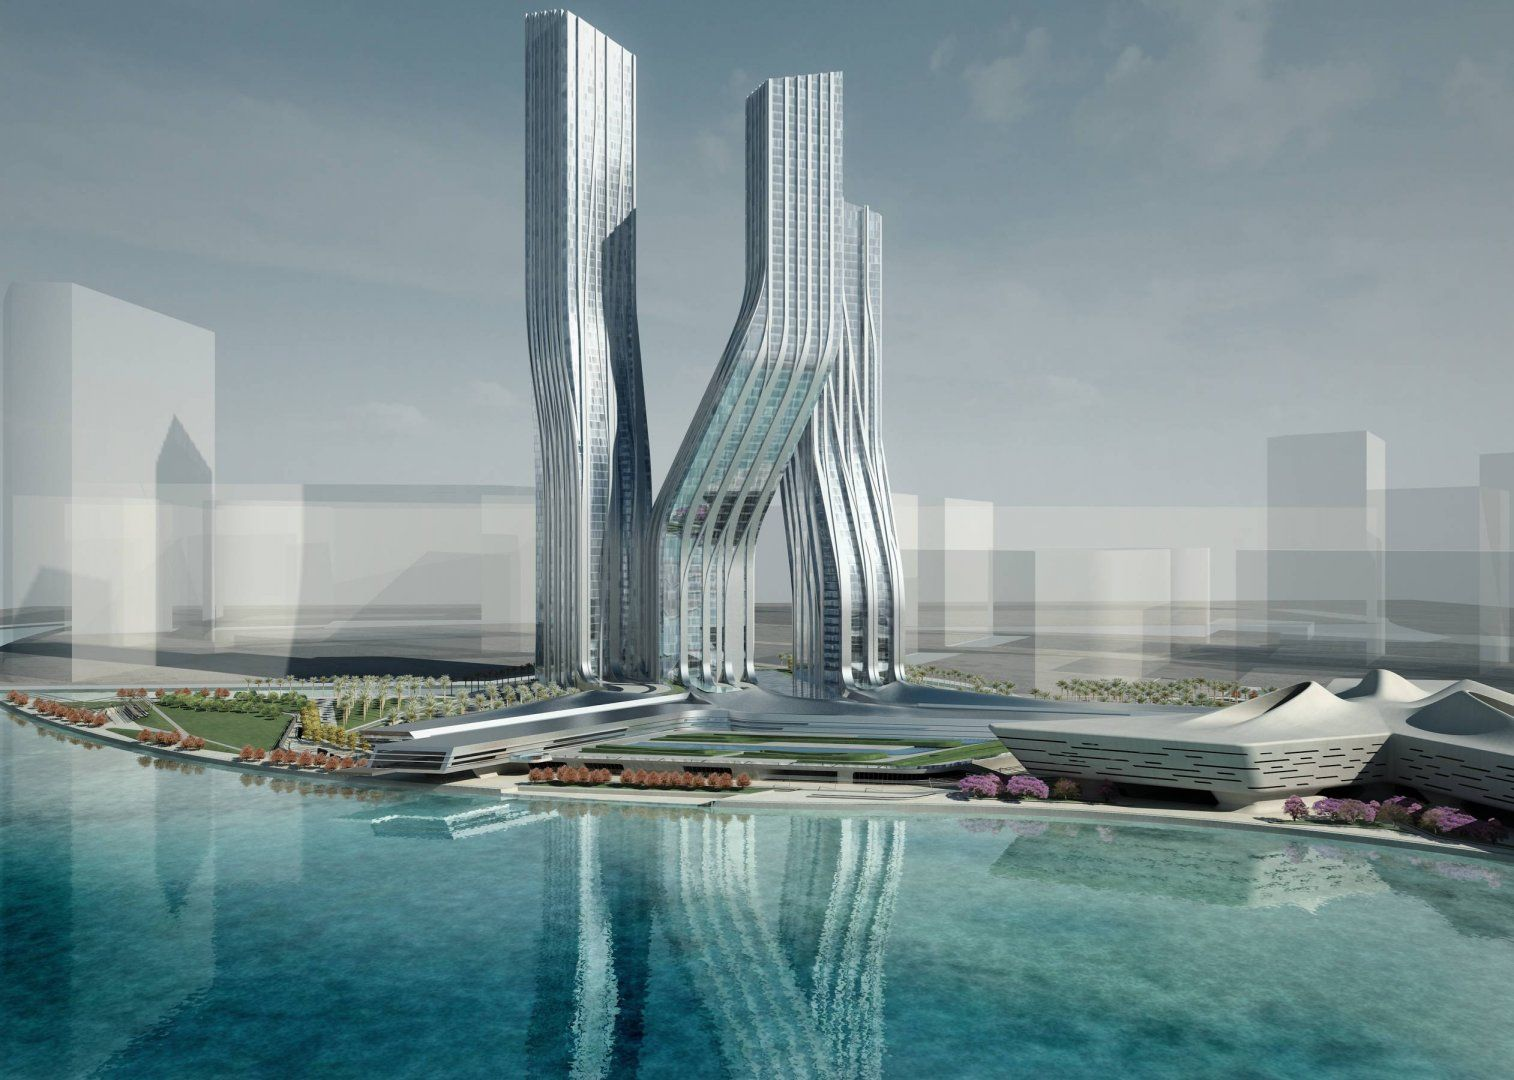 Spectacular Zaha Hadid Futuristic Architecture Inspiration: Great Signature  Towers In Unique Folded Architecture Design With Full Of Glass W.